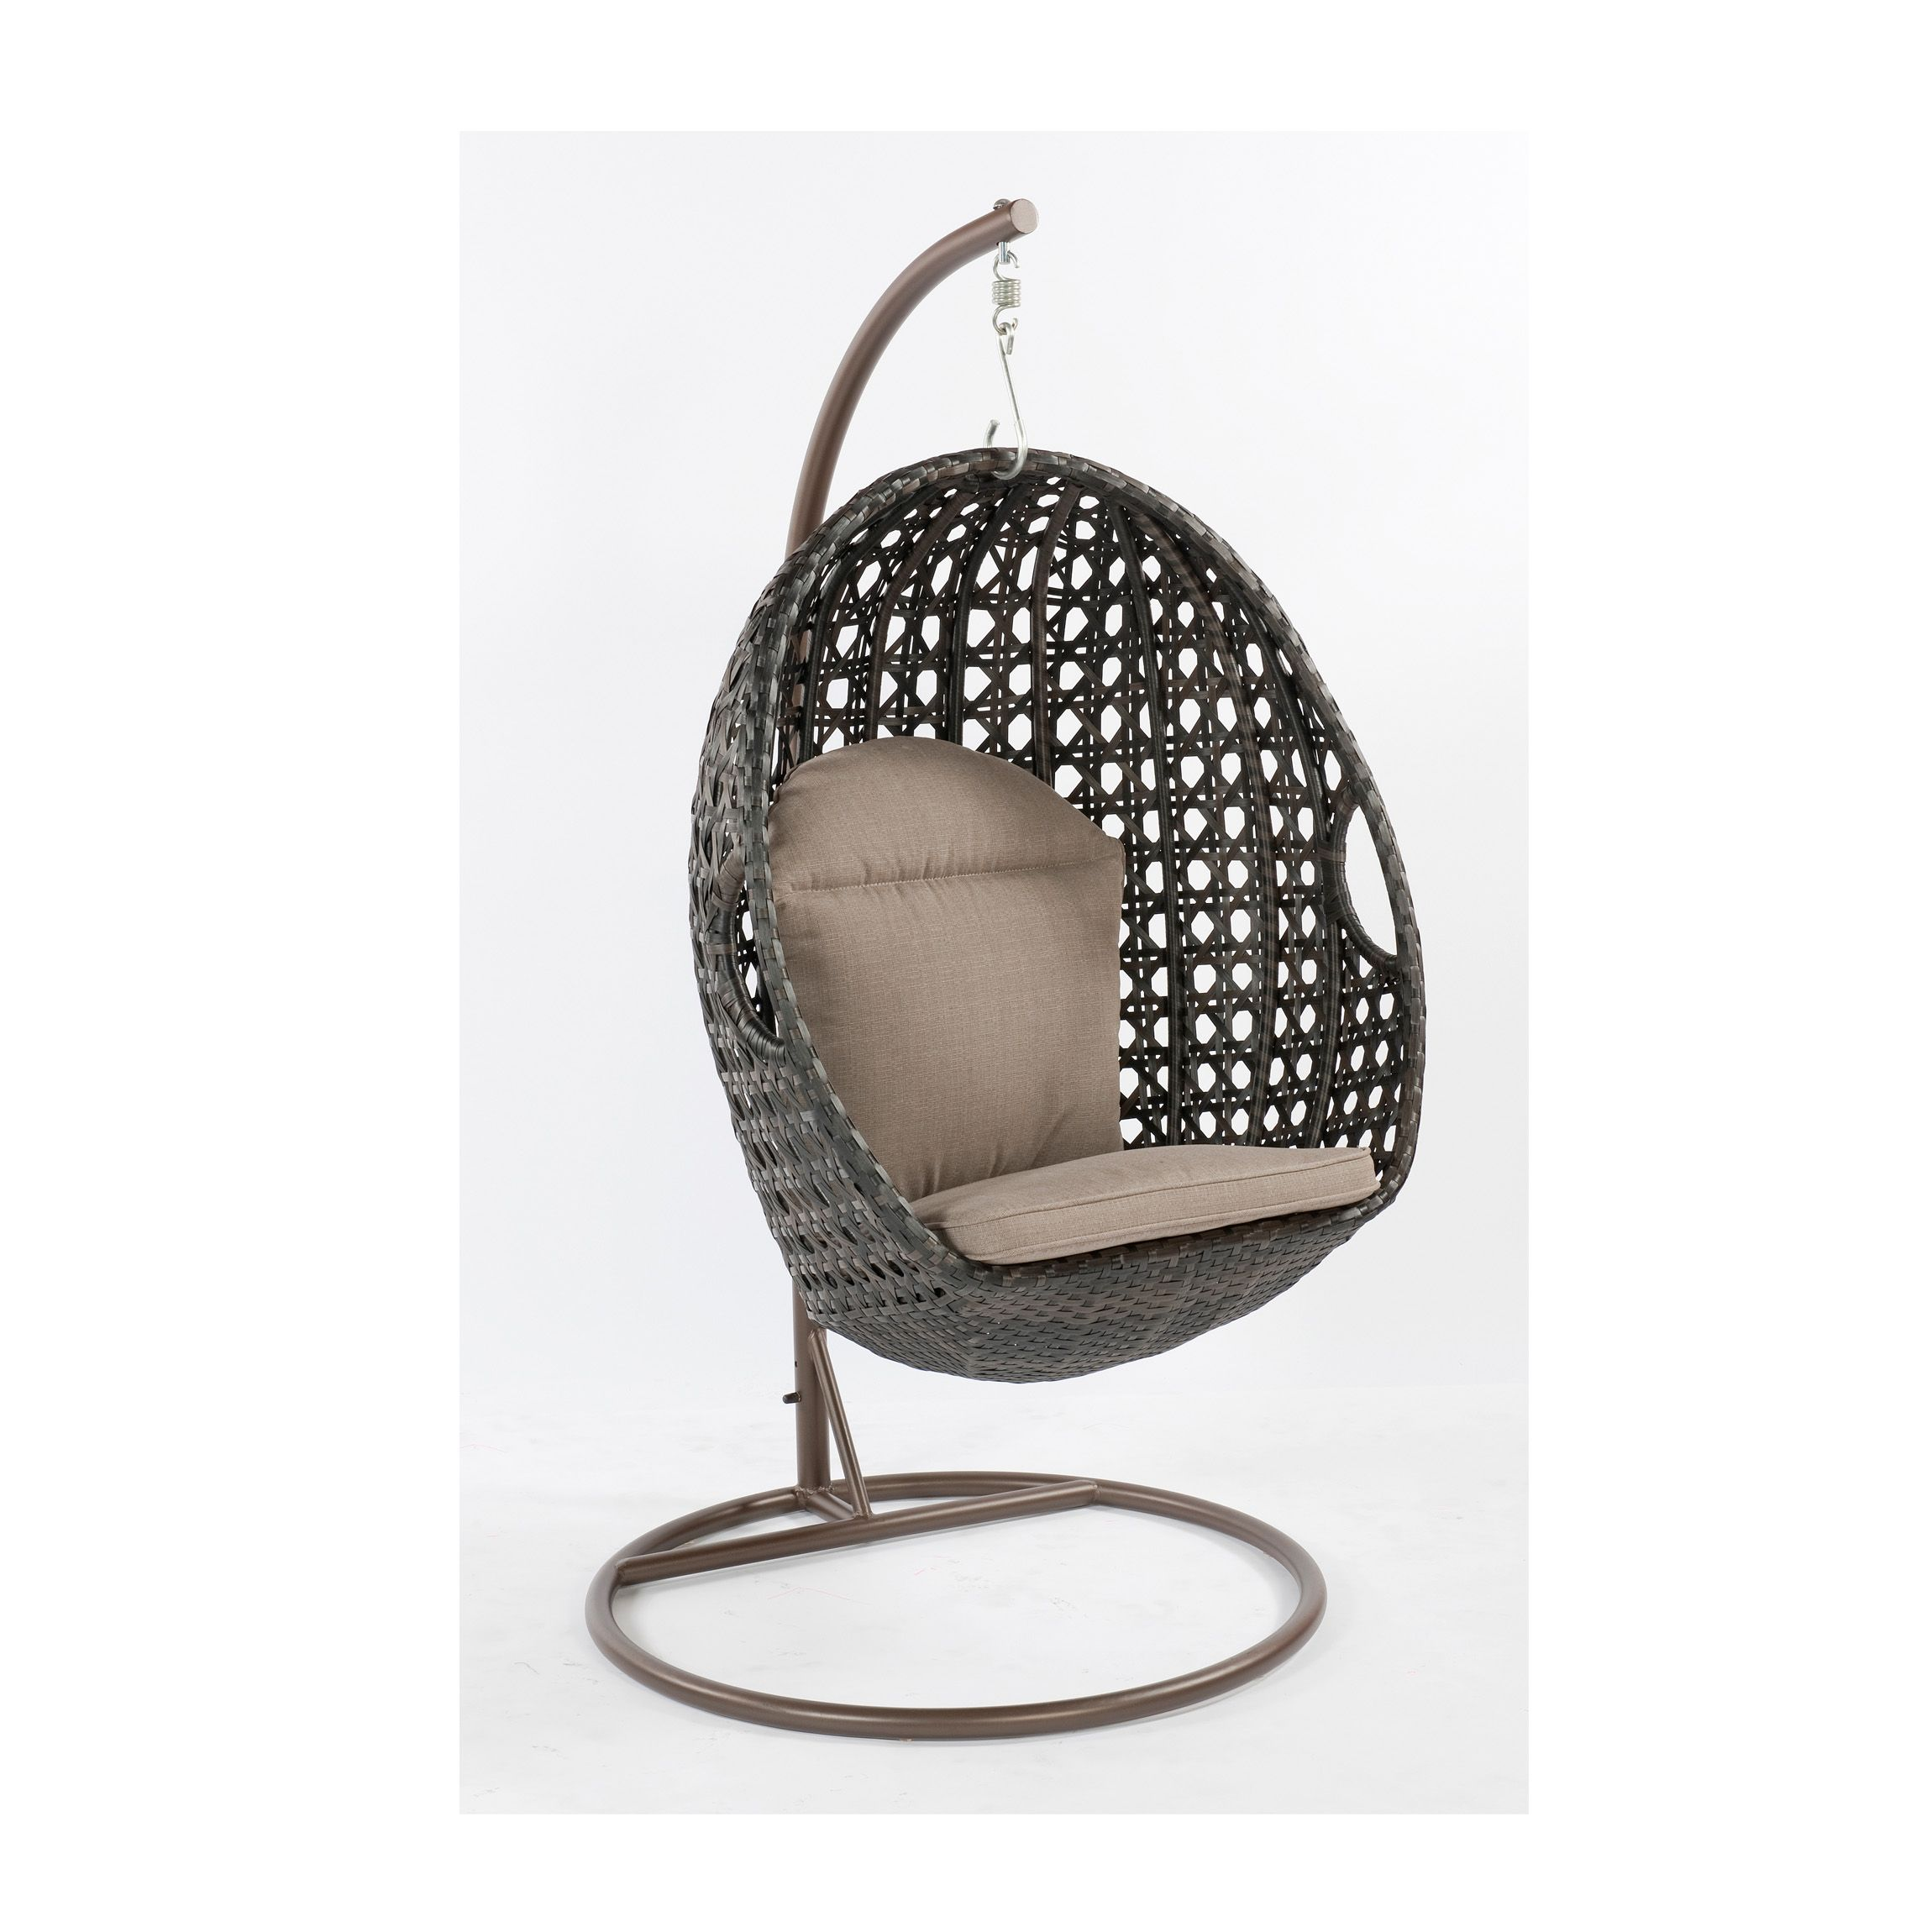 Al Fresco St Tropez Hanging Chair And Cushion Best Office For Short Person Mimosa Resin Wicker Egg Bunnings Warehouse The